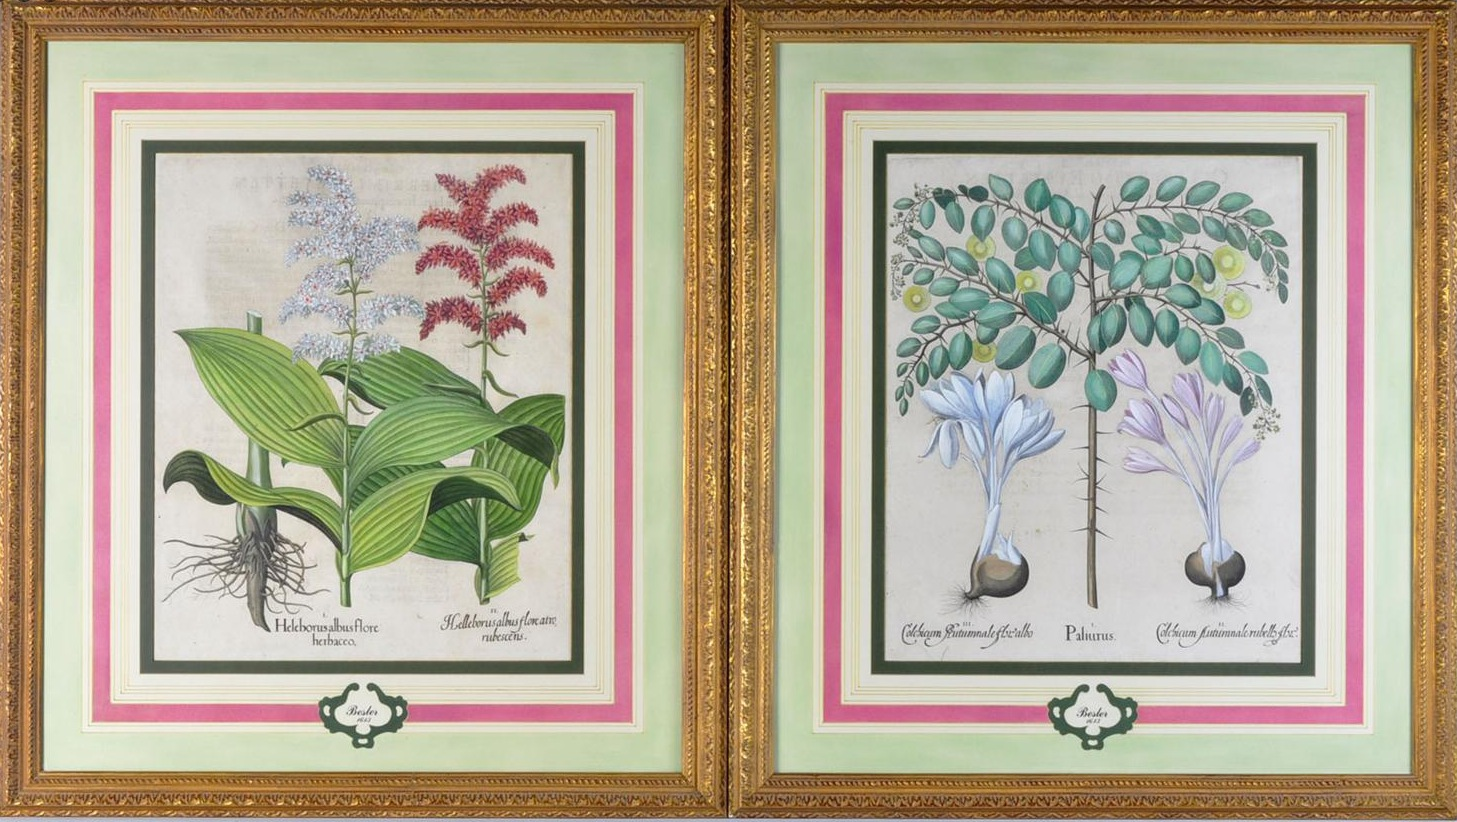 French matts on antique botanicals by Basilius Besler photo